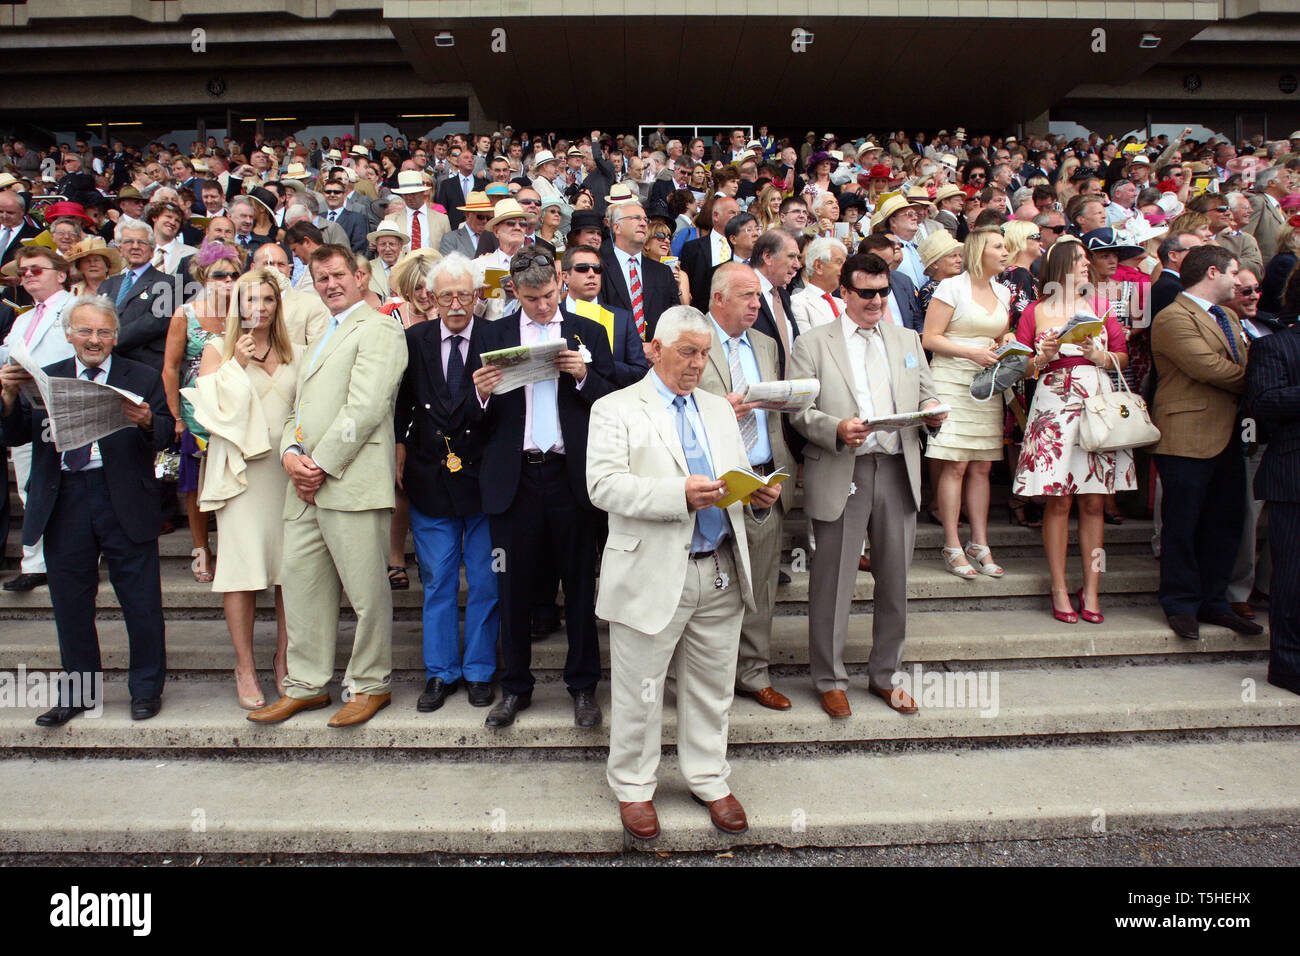 Punters at Goodwood racecourse. 29.7.2010. Stock Photo